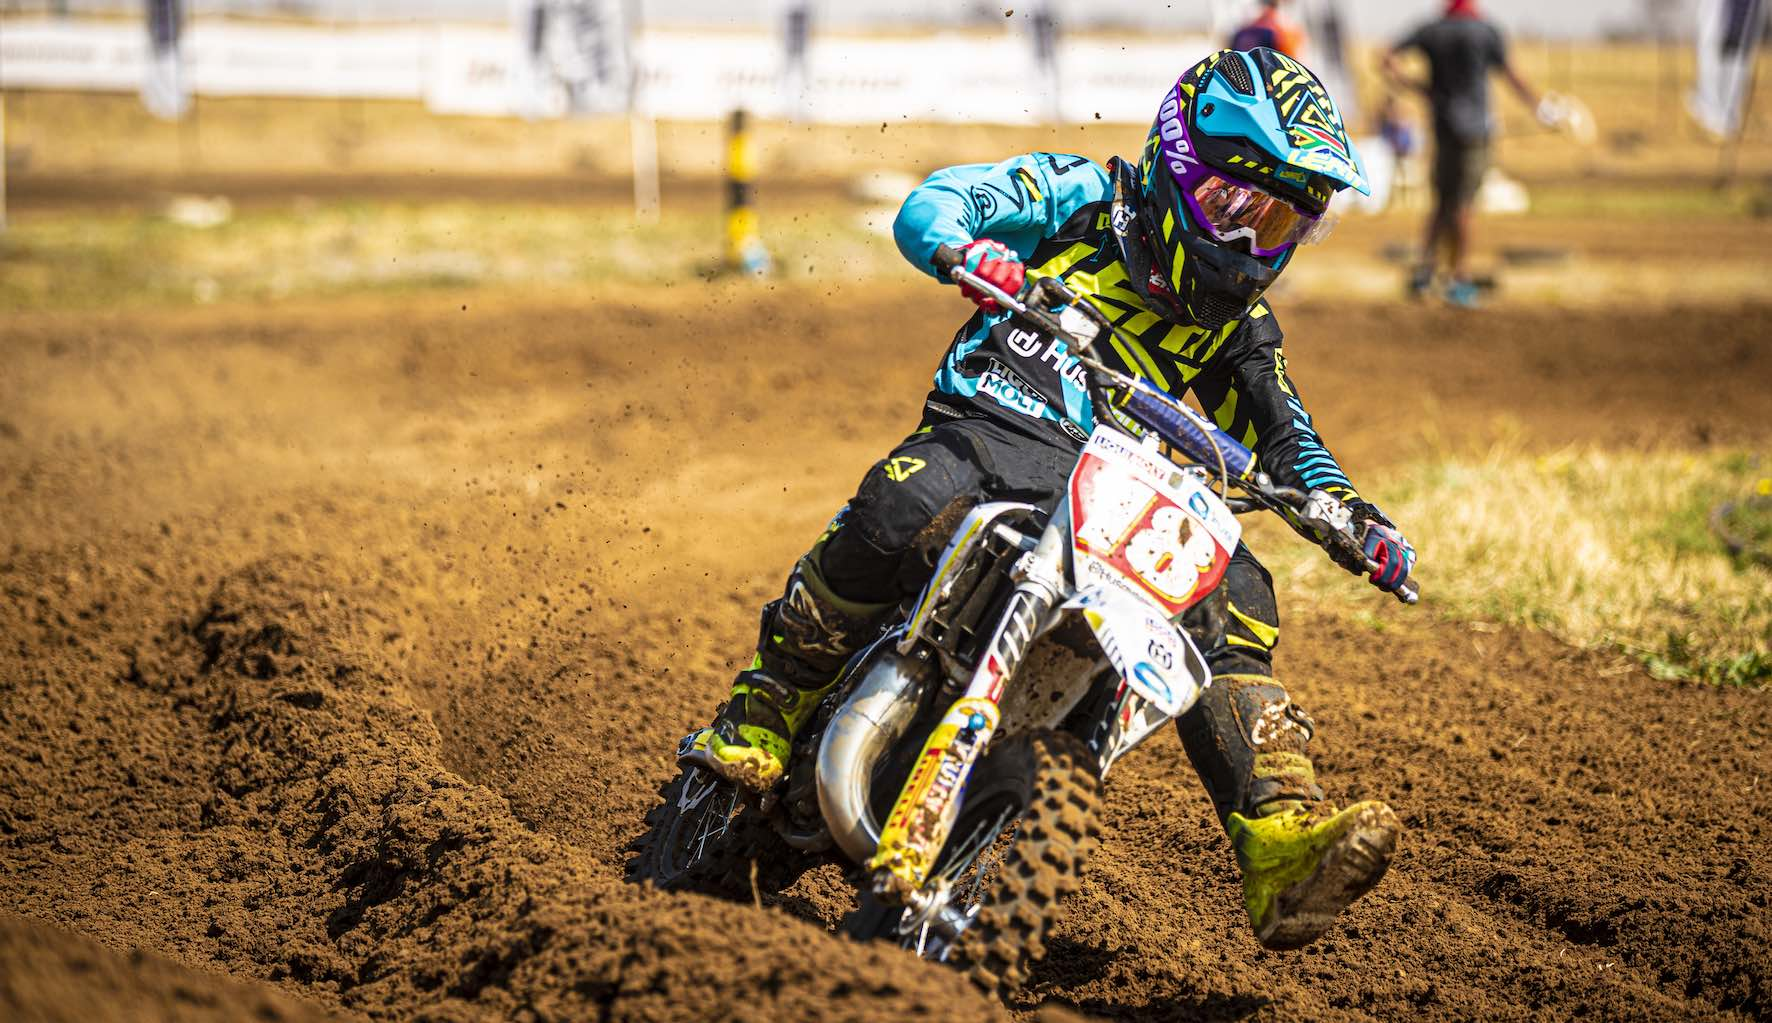 Neil van der Vyver racing the penultimate round of the 2019 South African Motocross National in Welkom